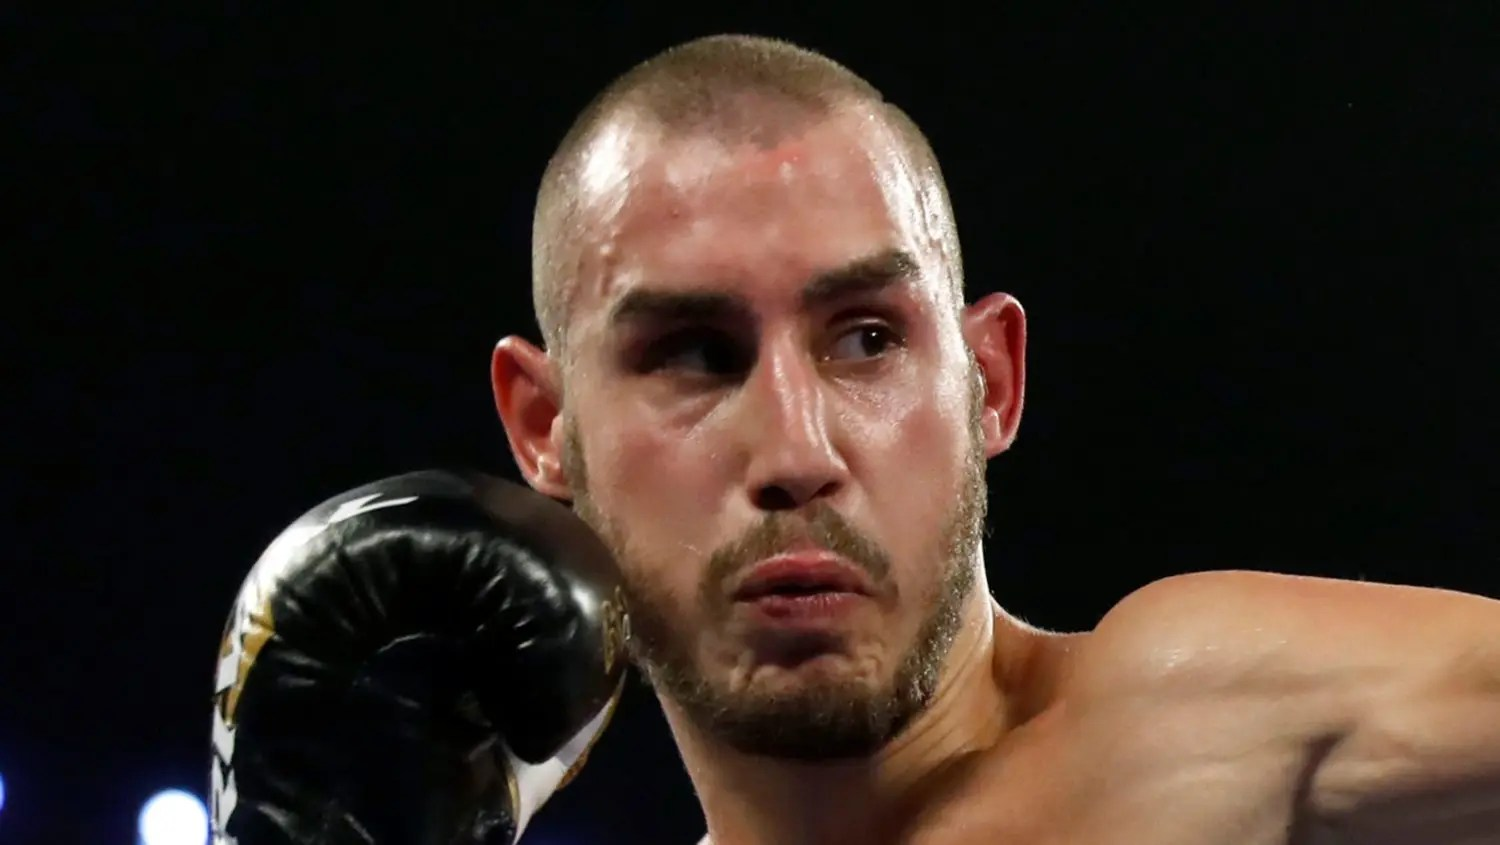 Maxim Dadashev, 28, Dies From Brain Damage Suffered In TKO Loss